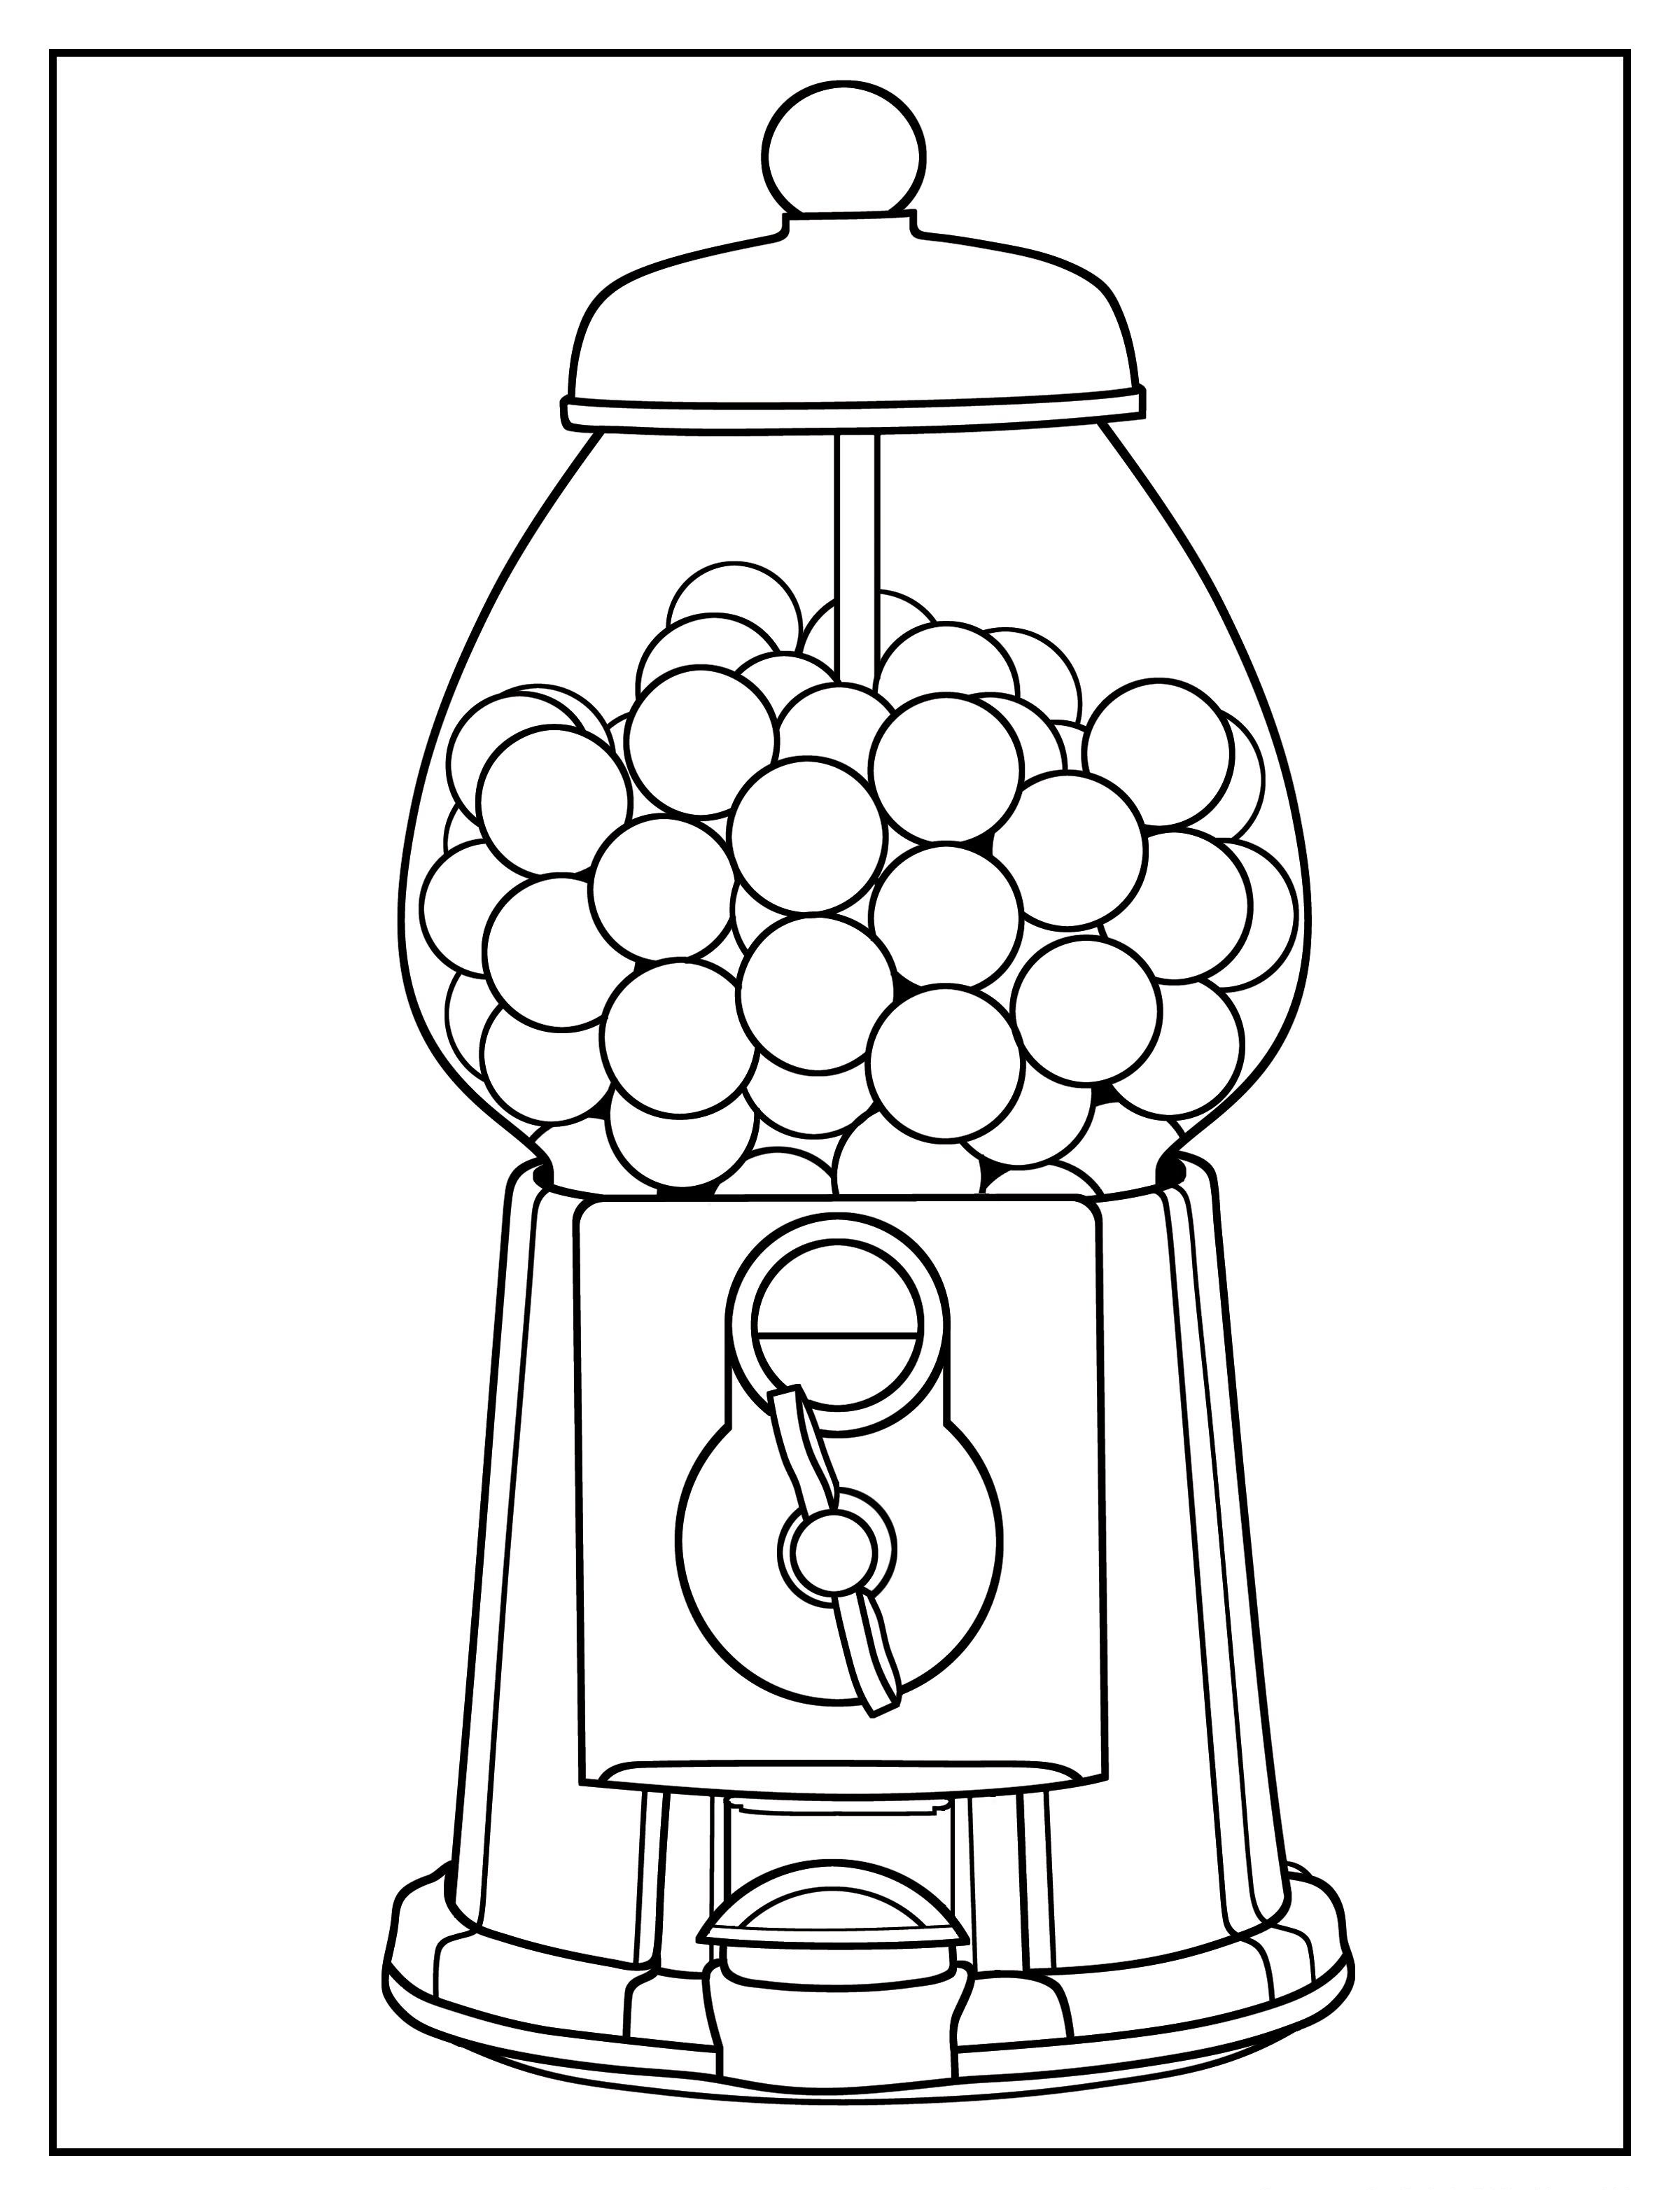 coloring sheet gumball machine coloring page gumball machine coloring pages sheet machine coloring coloring gumball page